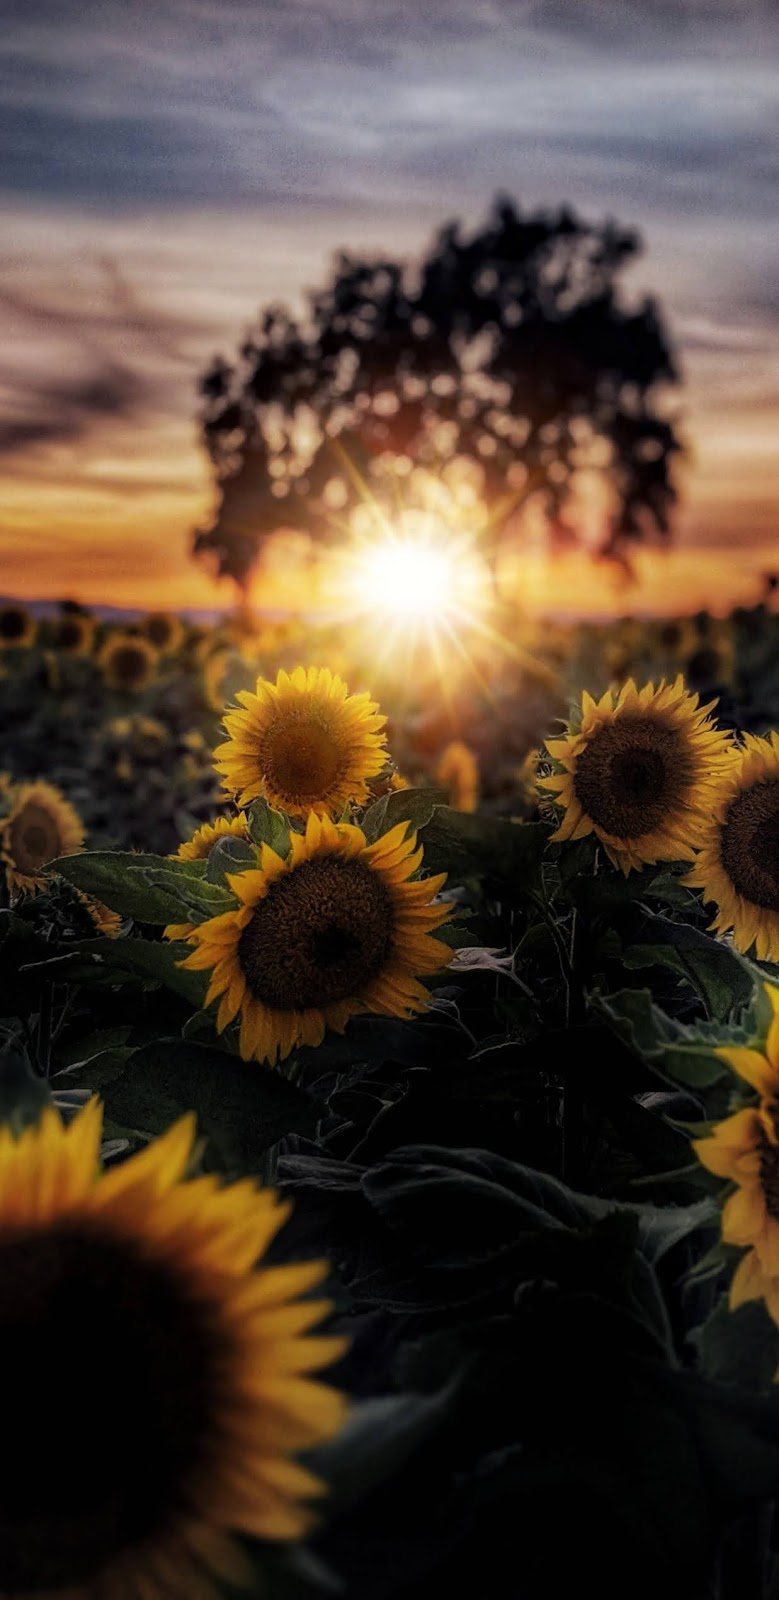 Sunflowers under the sunset